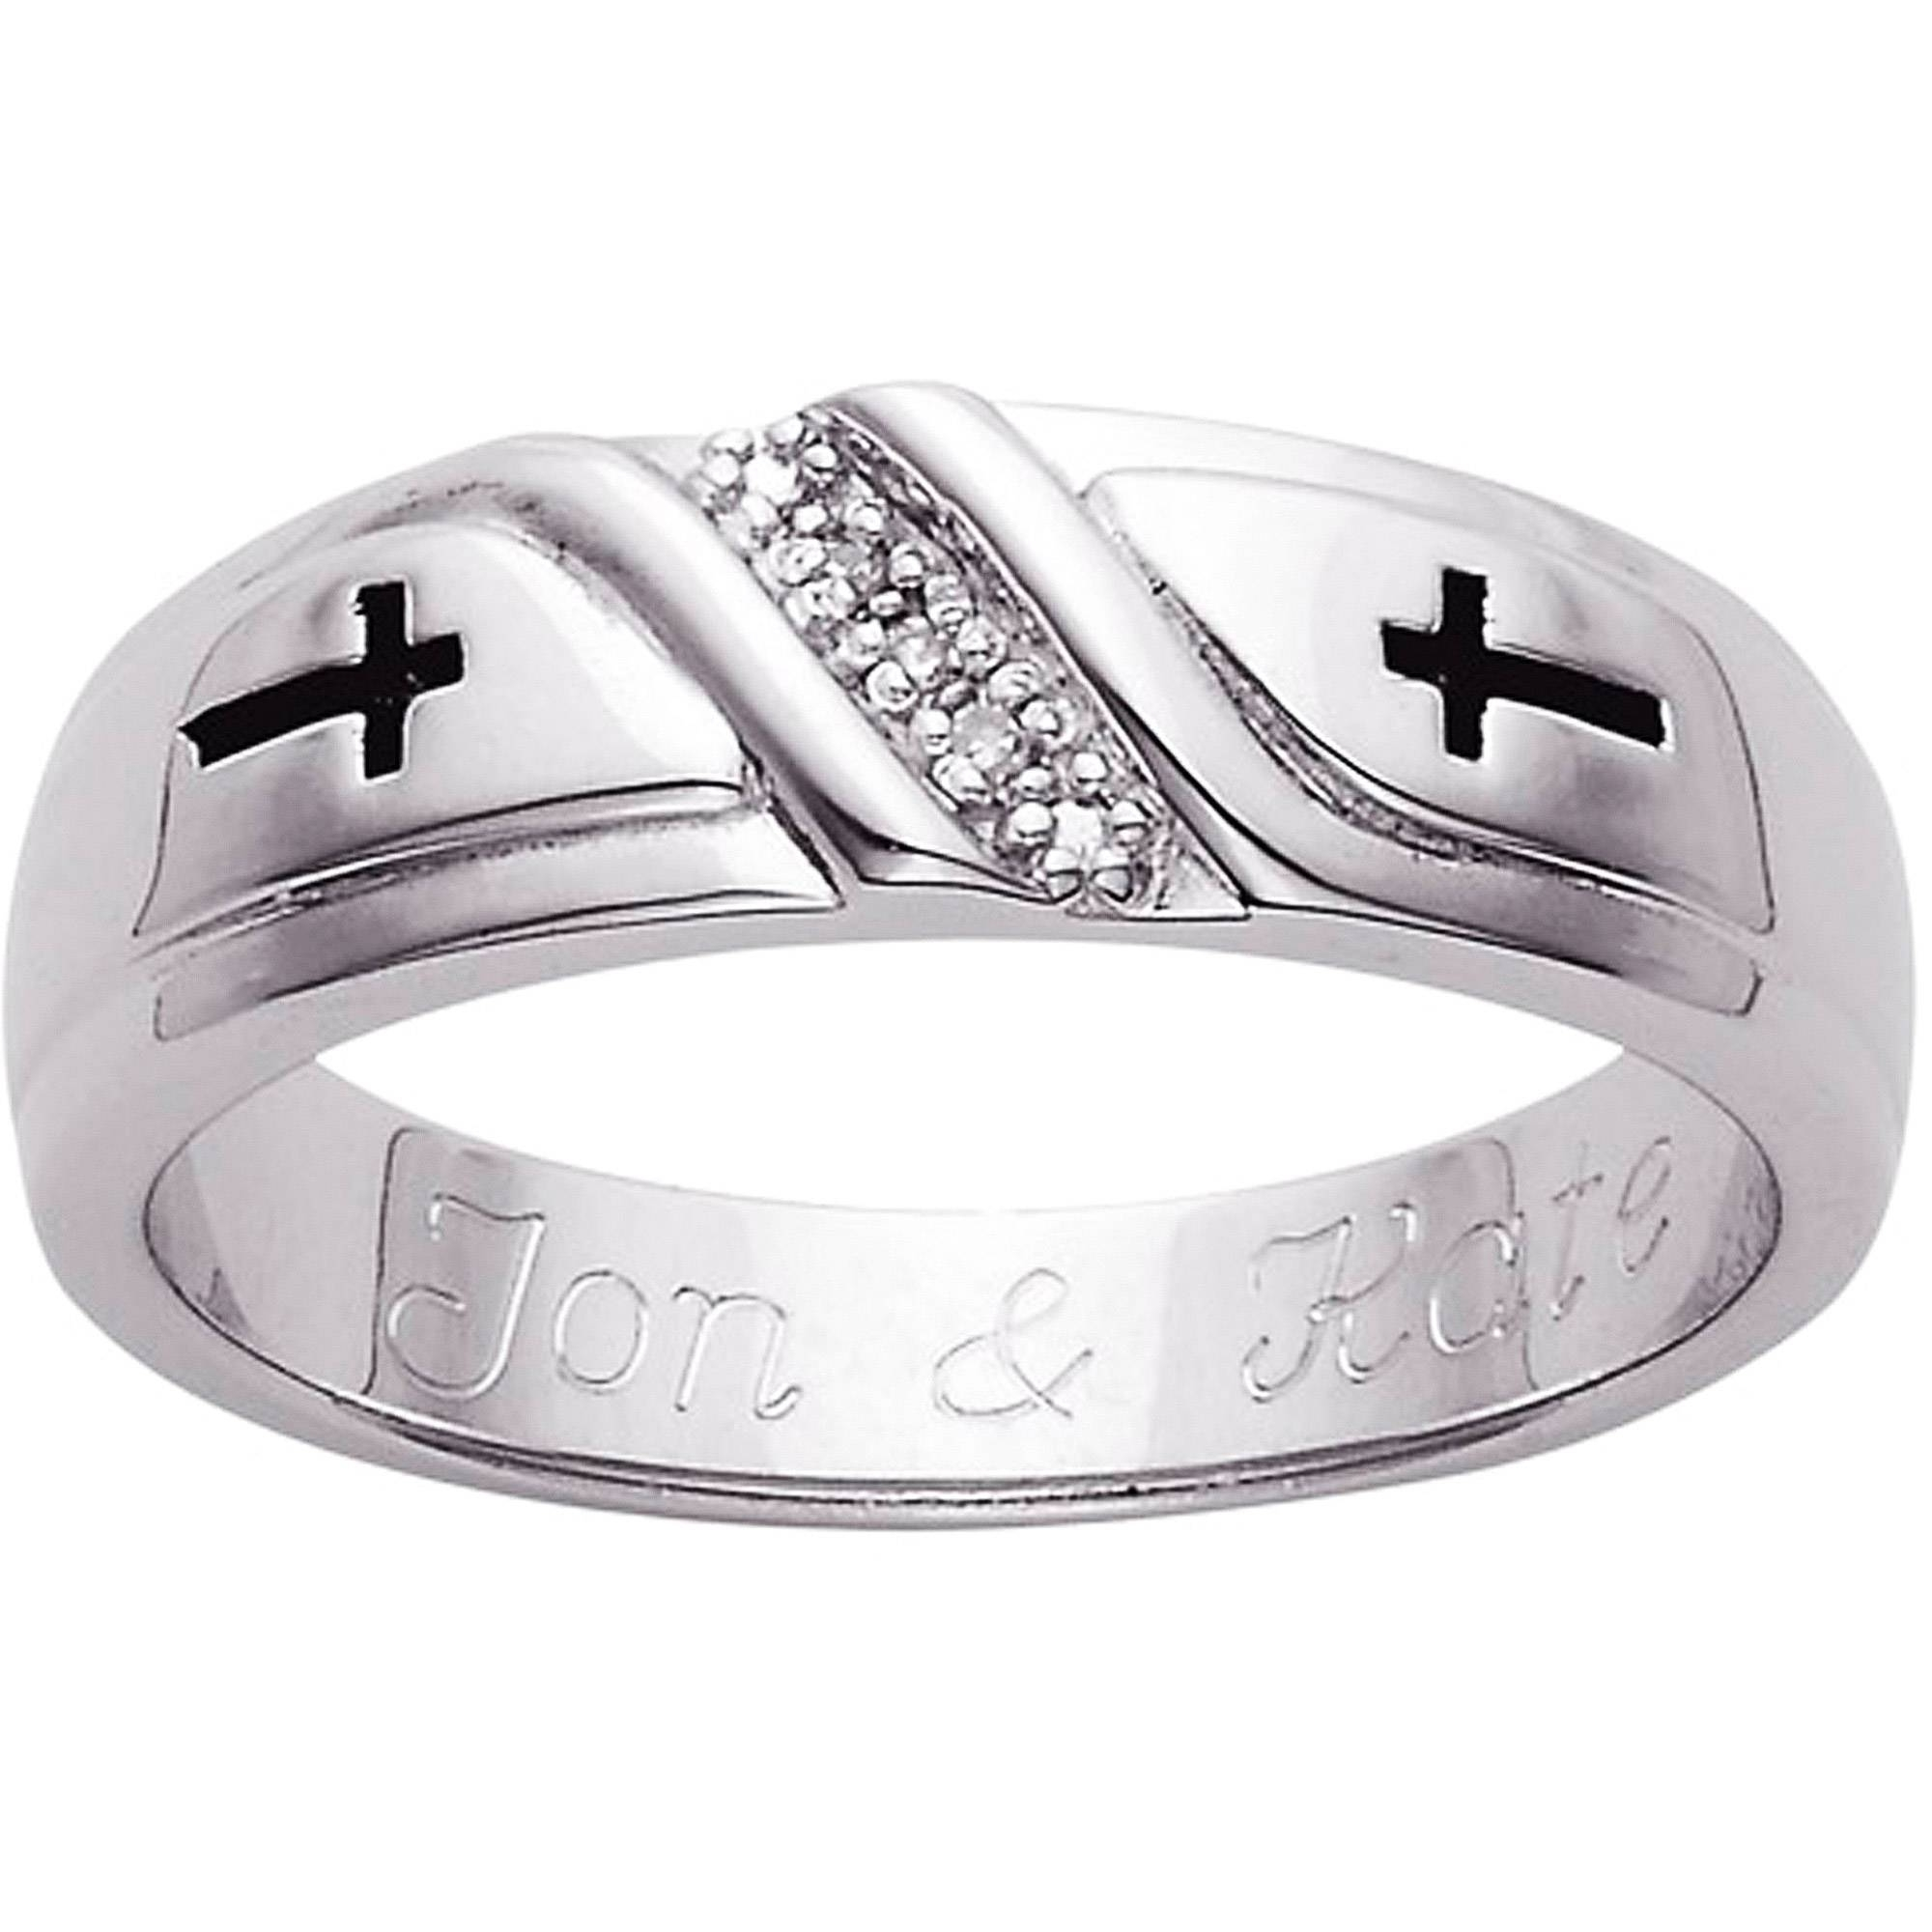 Personalized Men's Sterling Silver Diamond Accent Cross Wedding Regarding Mens Wedding Bands With Cross (View 12 of 15)